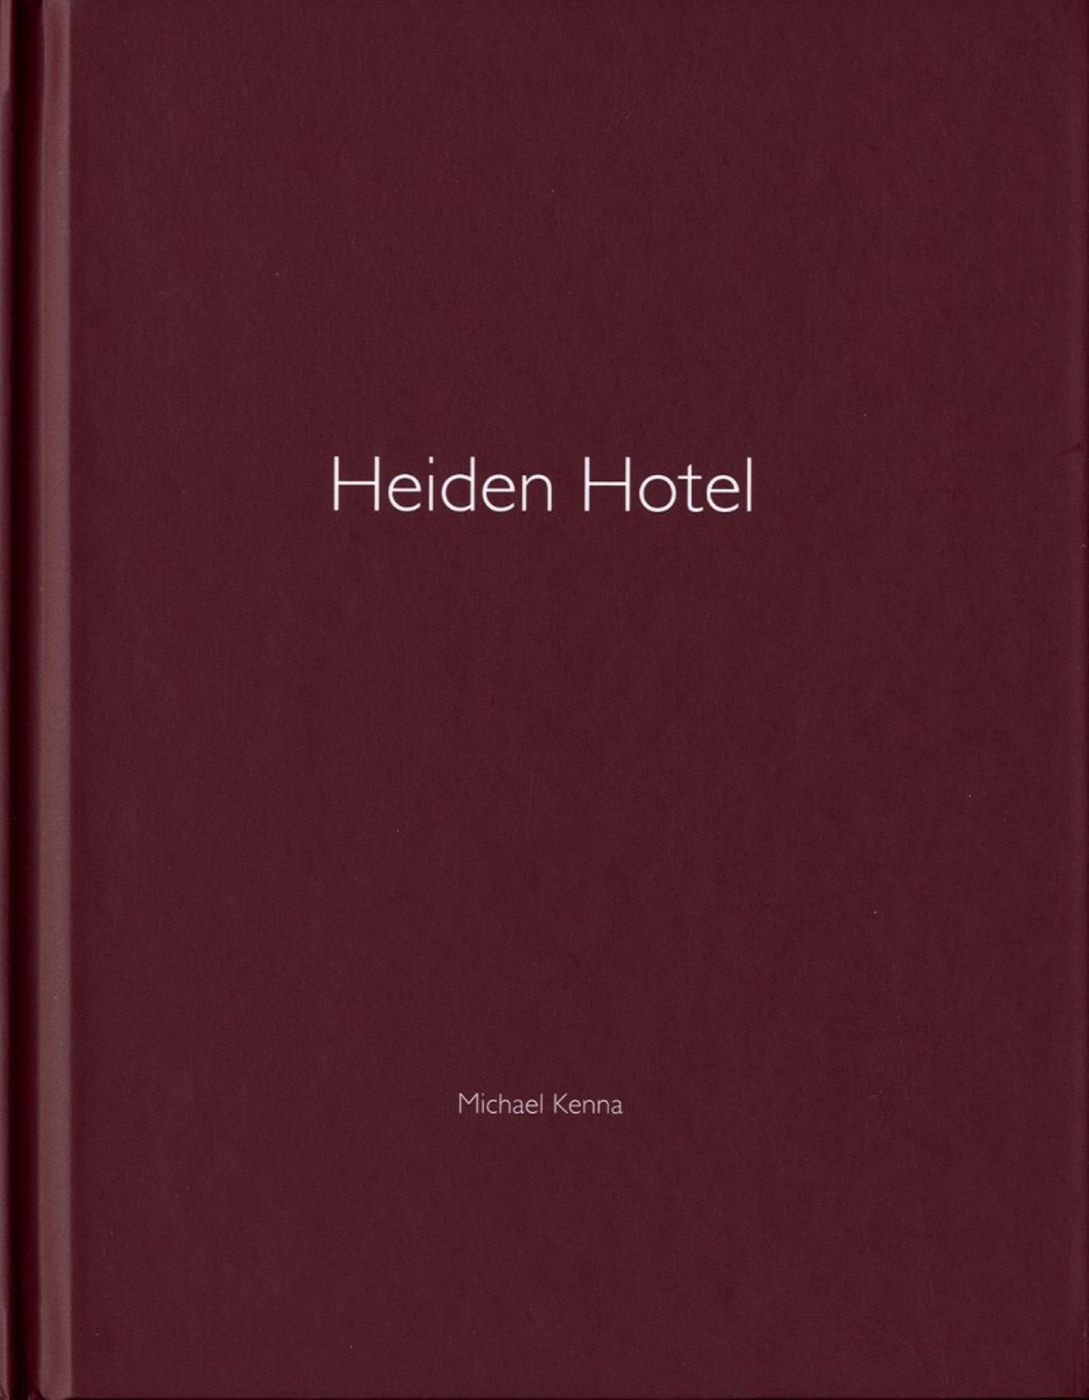 Michael Kenna: Heiden Hotel (One Picture Book #56), Limited Edition (with Print)